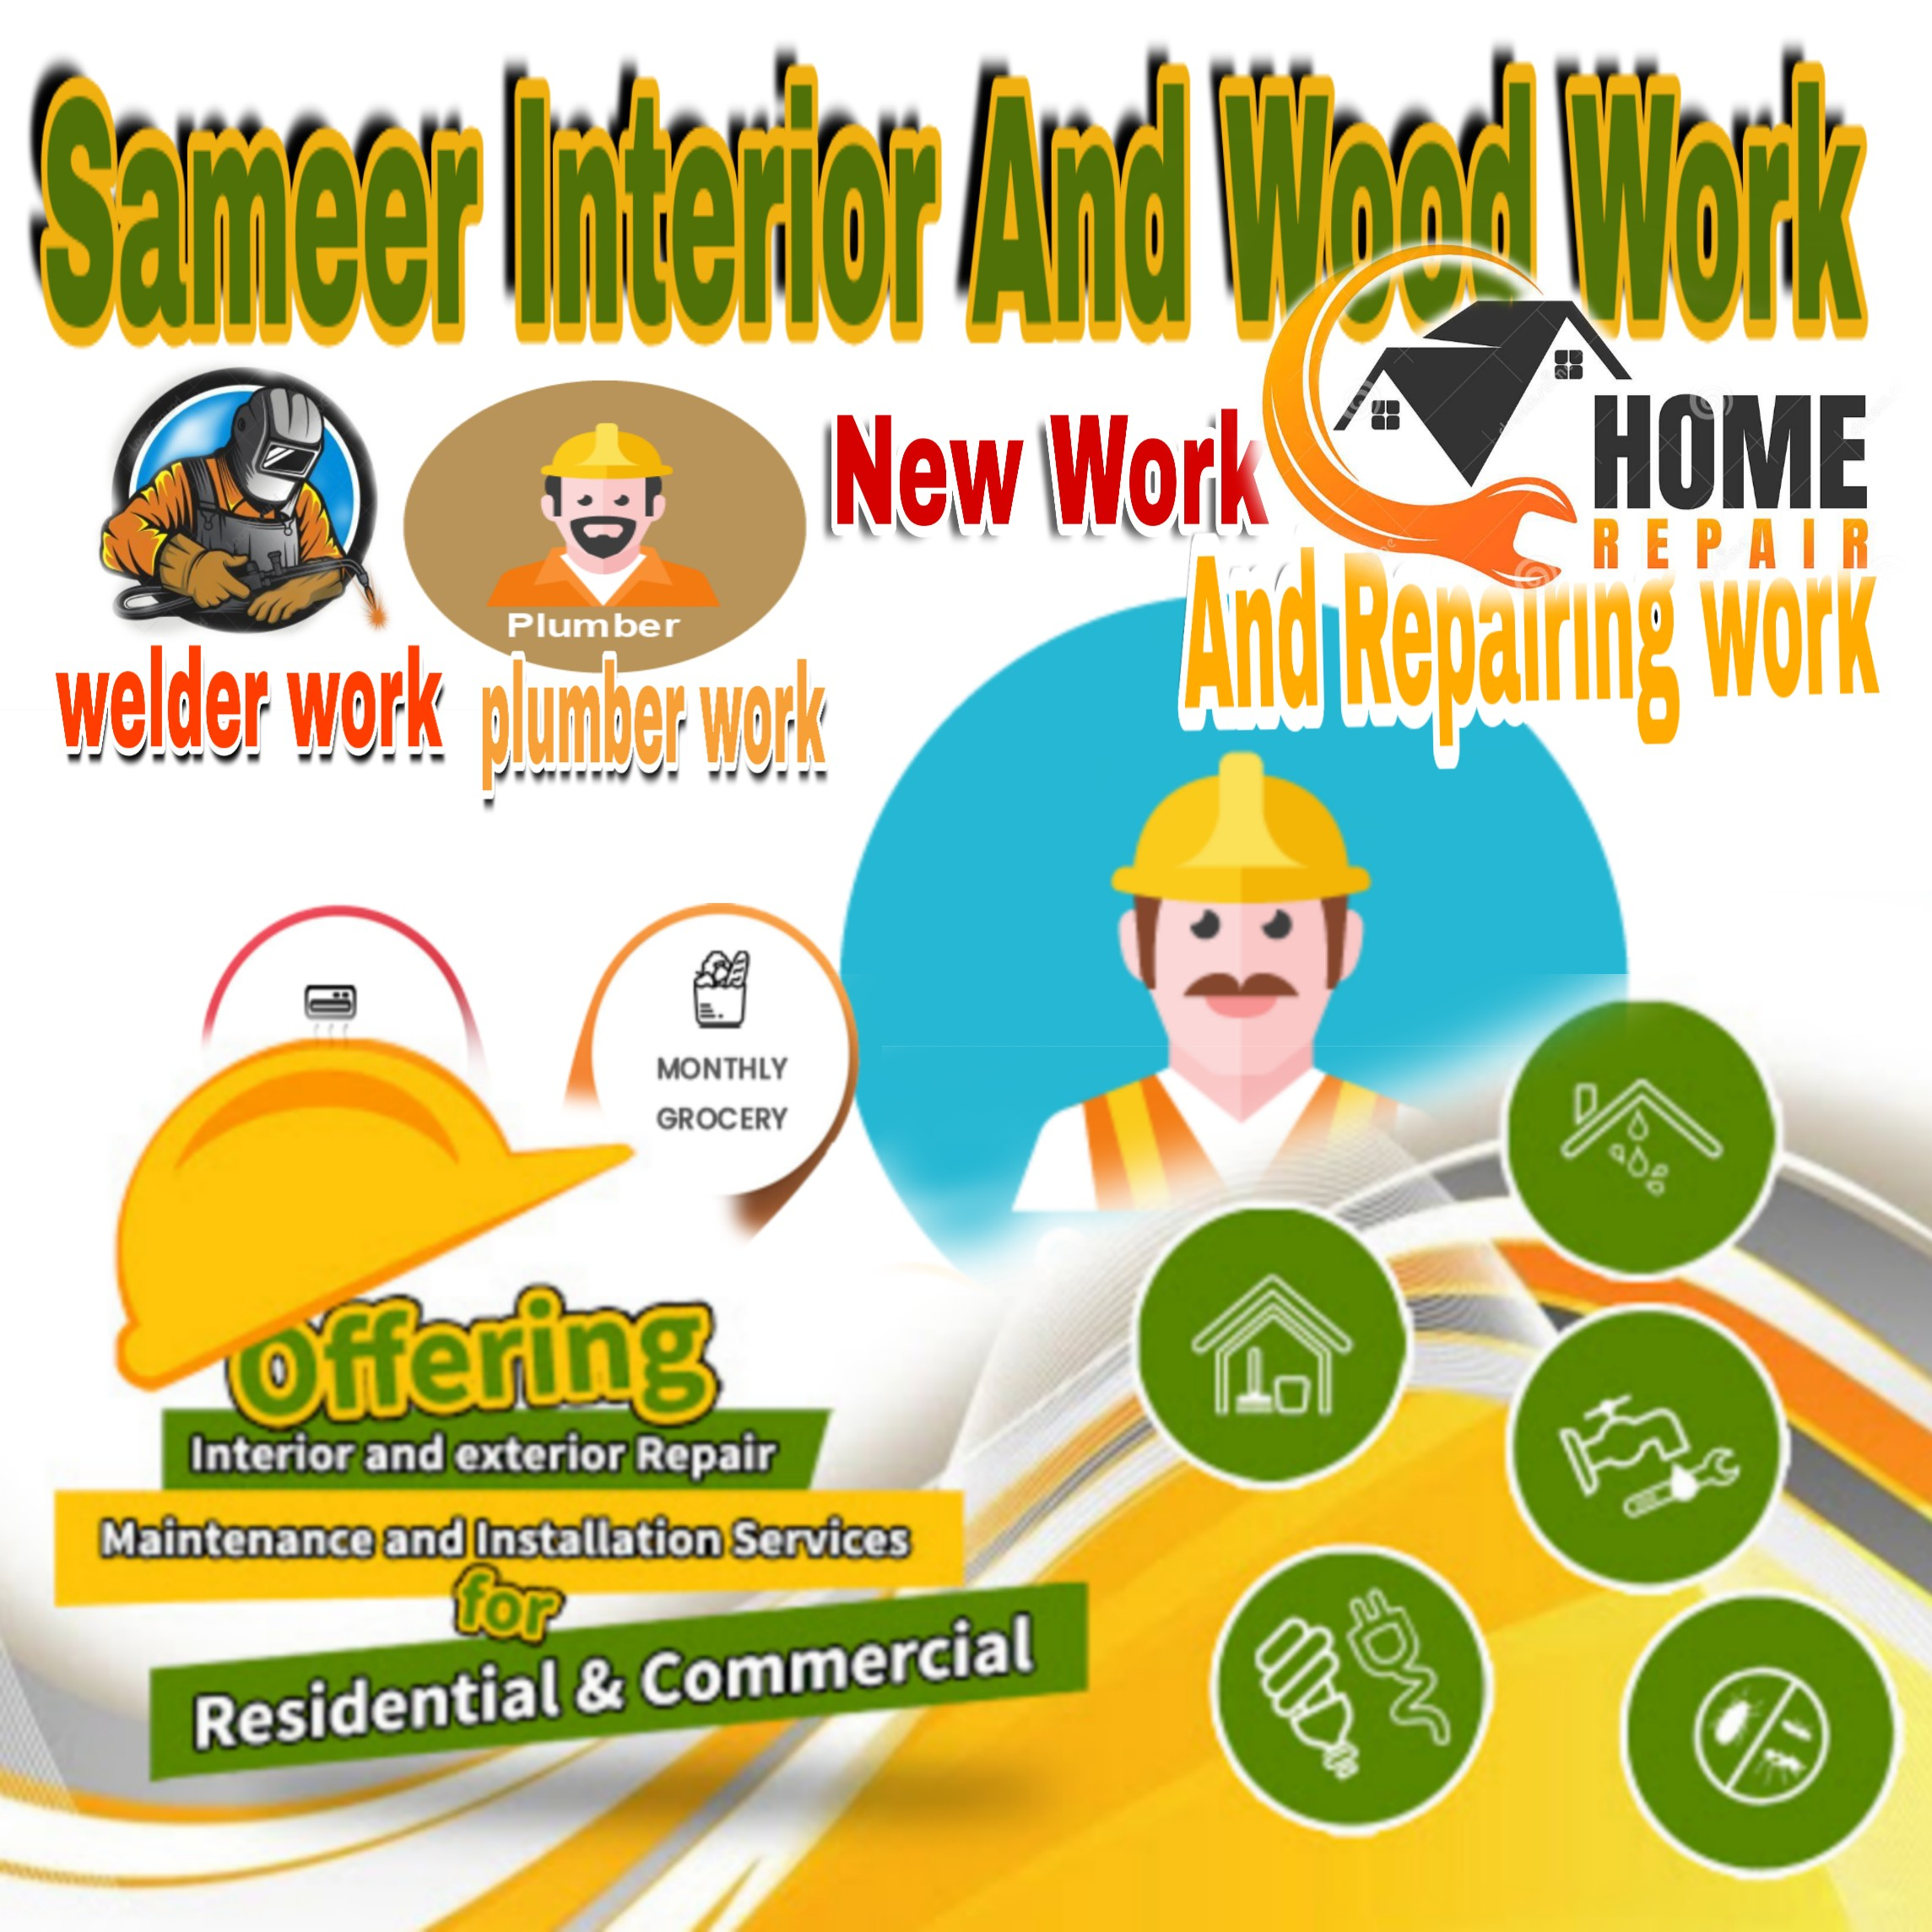 Sameer Interior And Wood Work in Agra